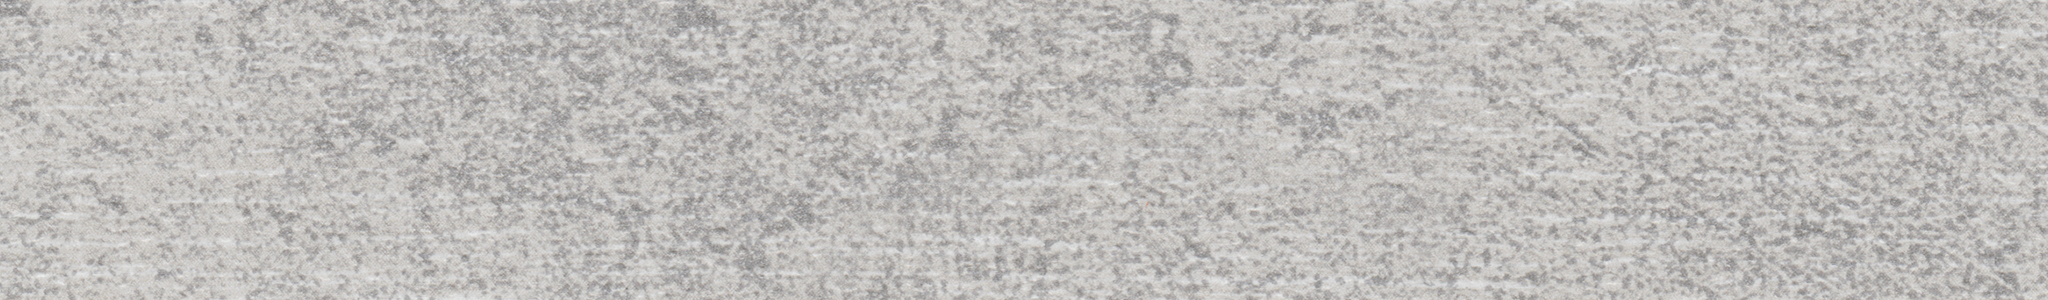 HD 290011 ABS Edge Texstone